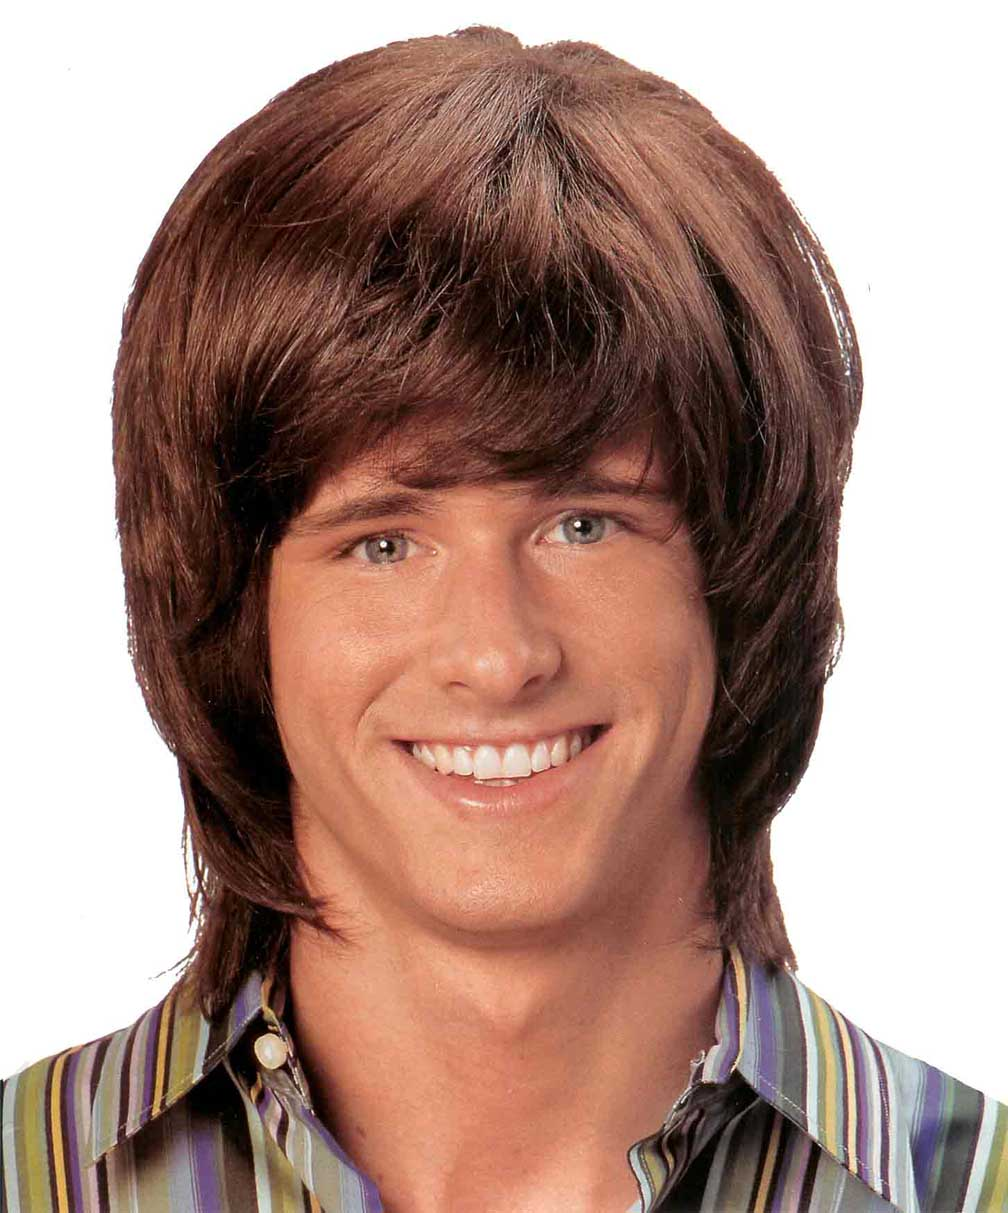 70s Hair Men Cheesy 70's shag wig